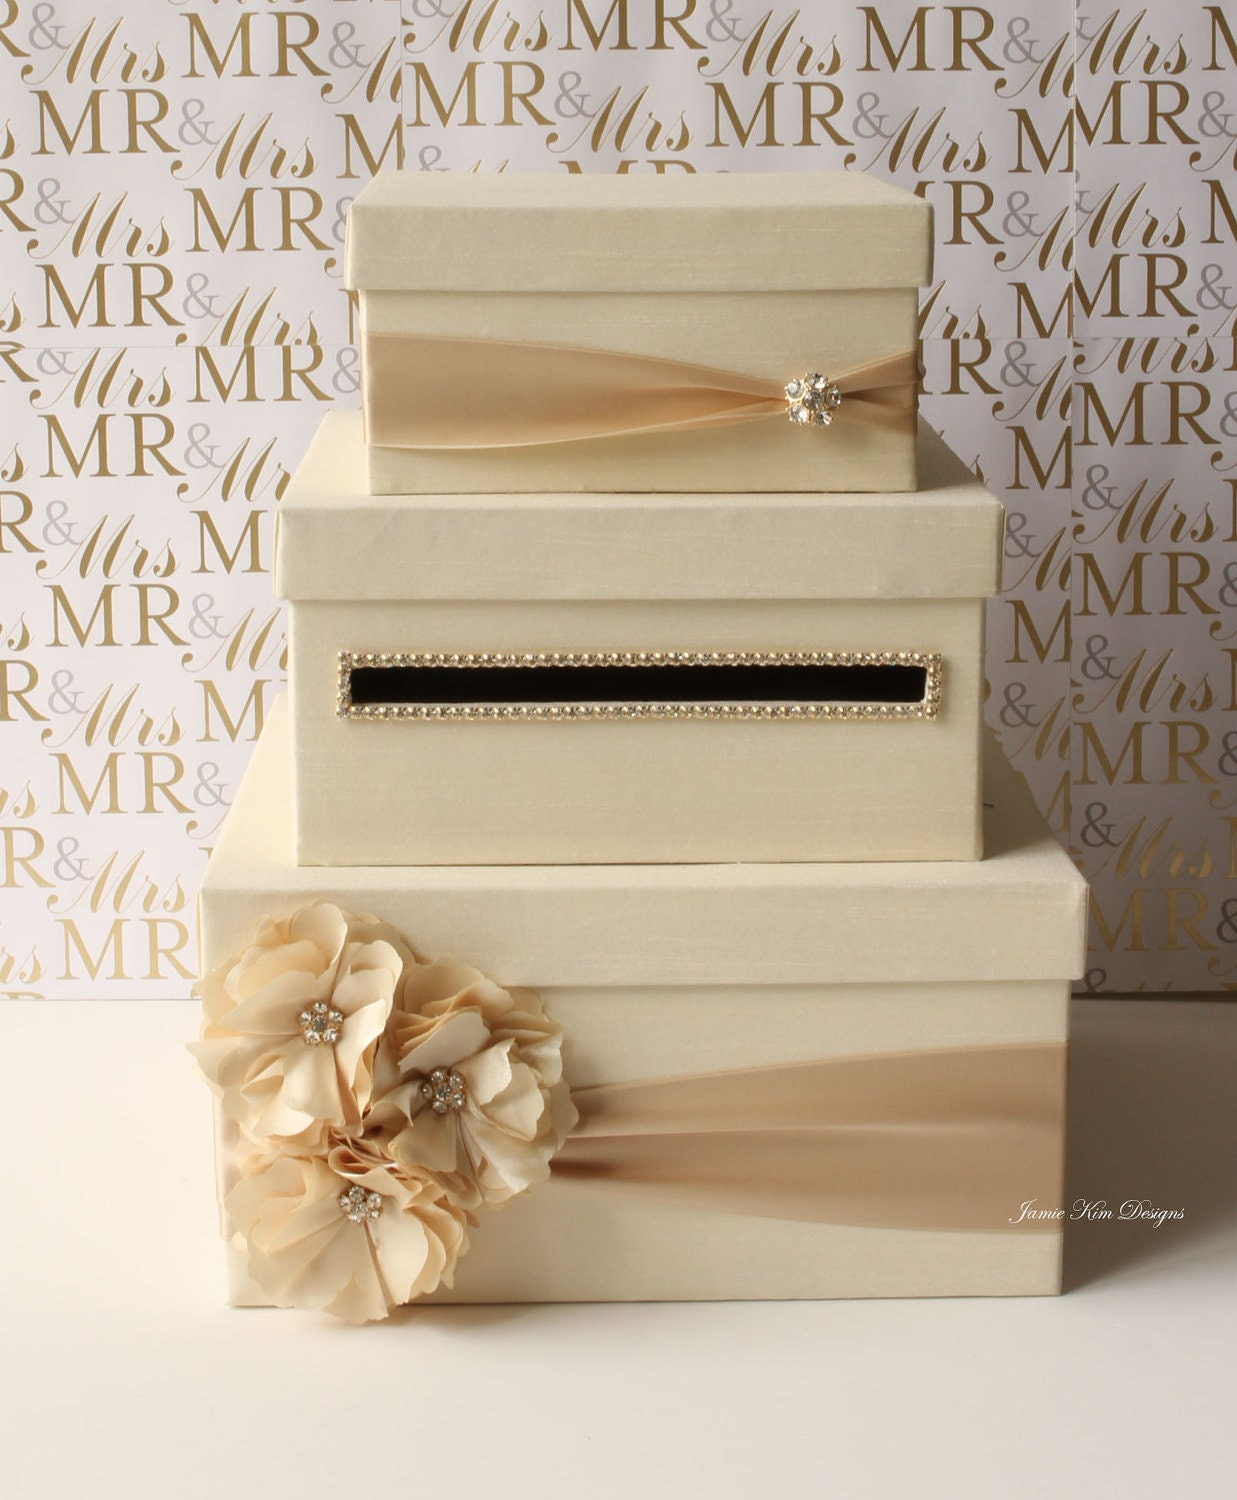 Wedding Gift Box Etsy : Wedding Card Box Money Box Gift Card Holder choose your